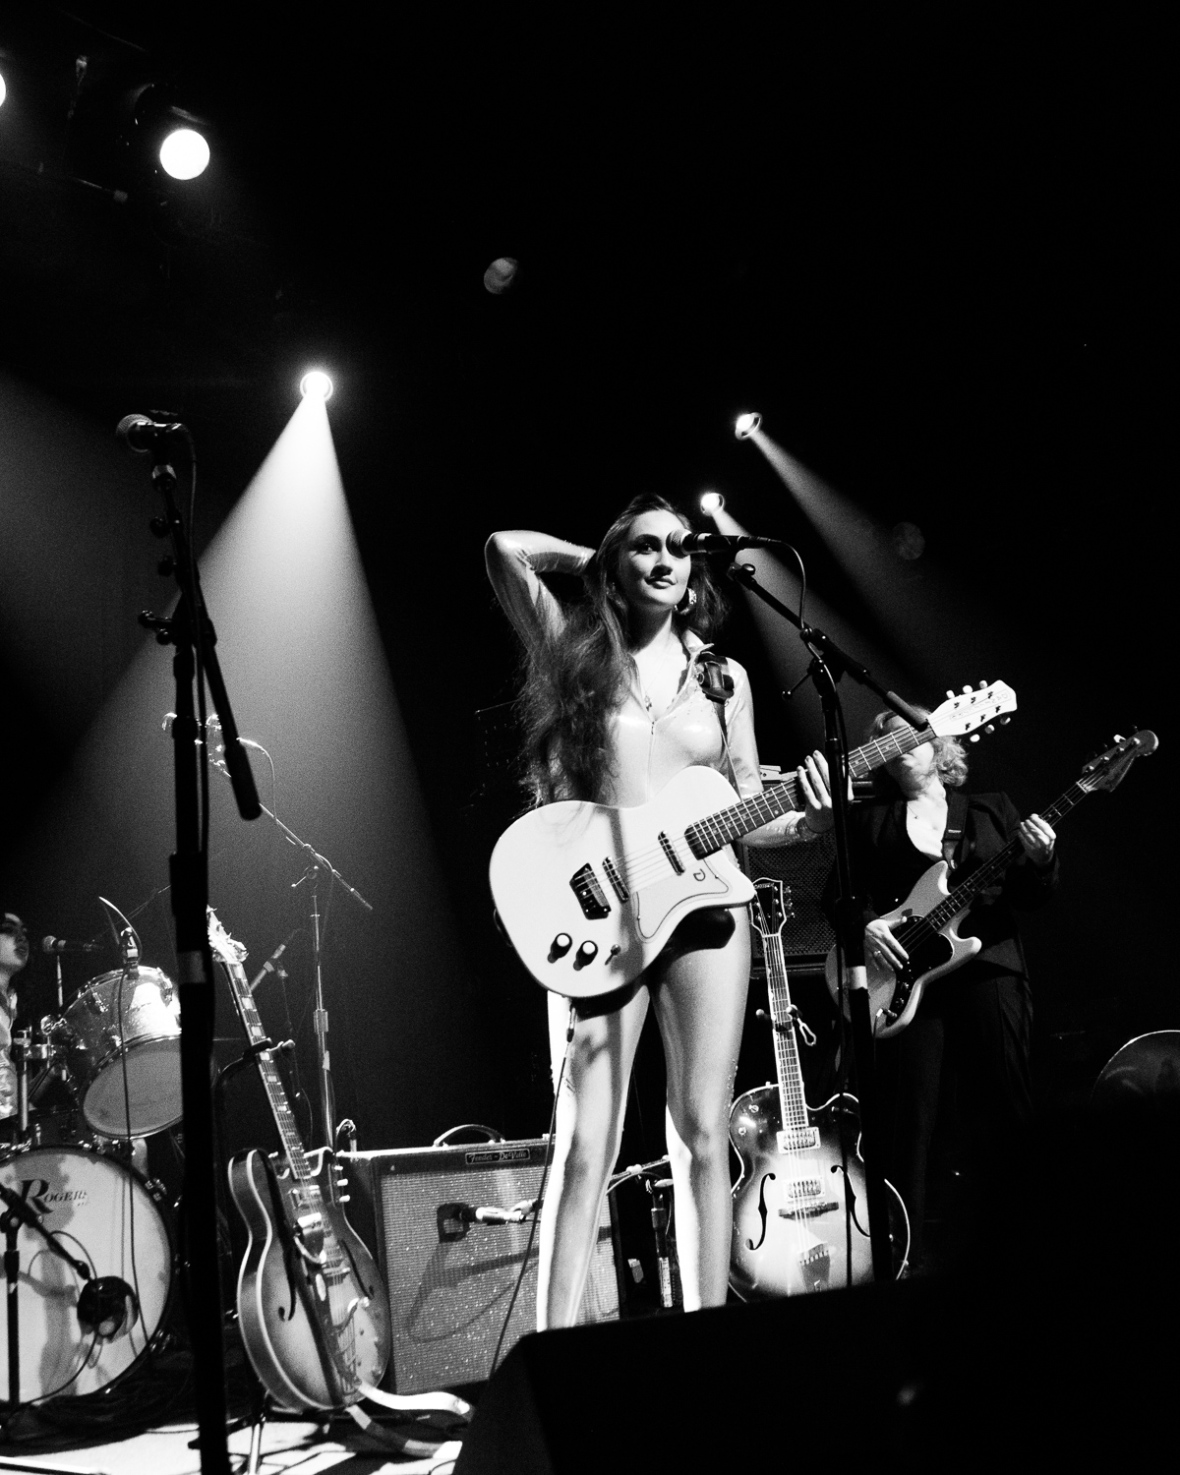 Kitty, Daisy & Lewis peform at The Independent, San Francisco